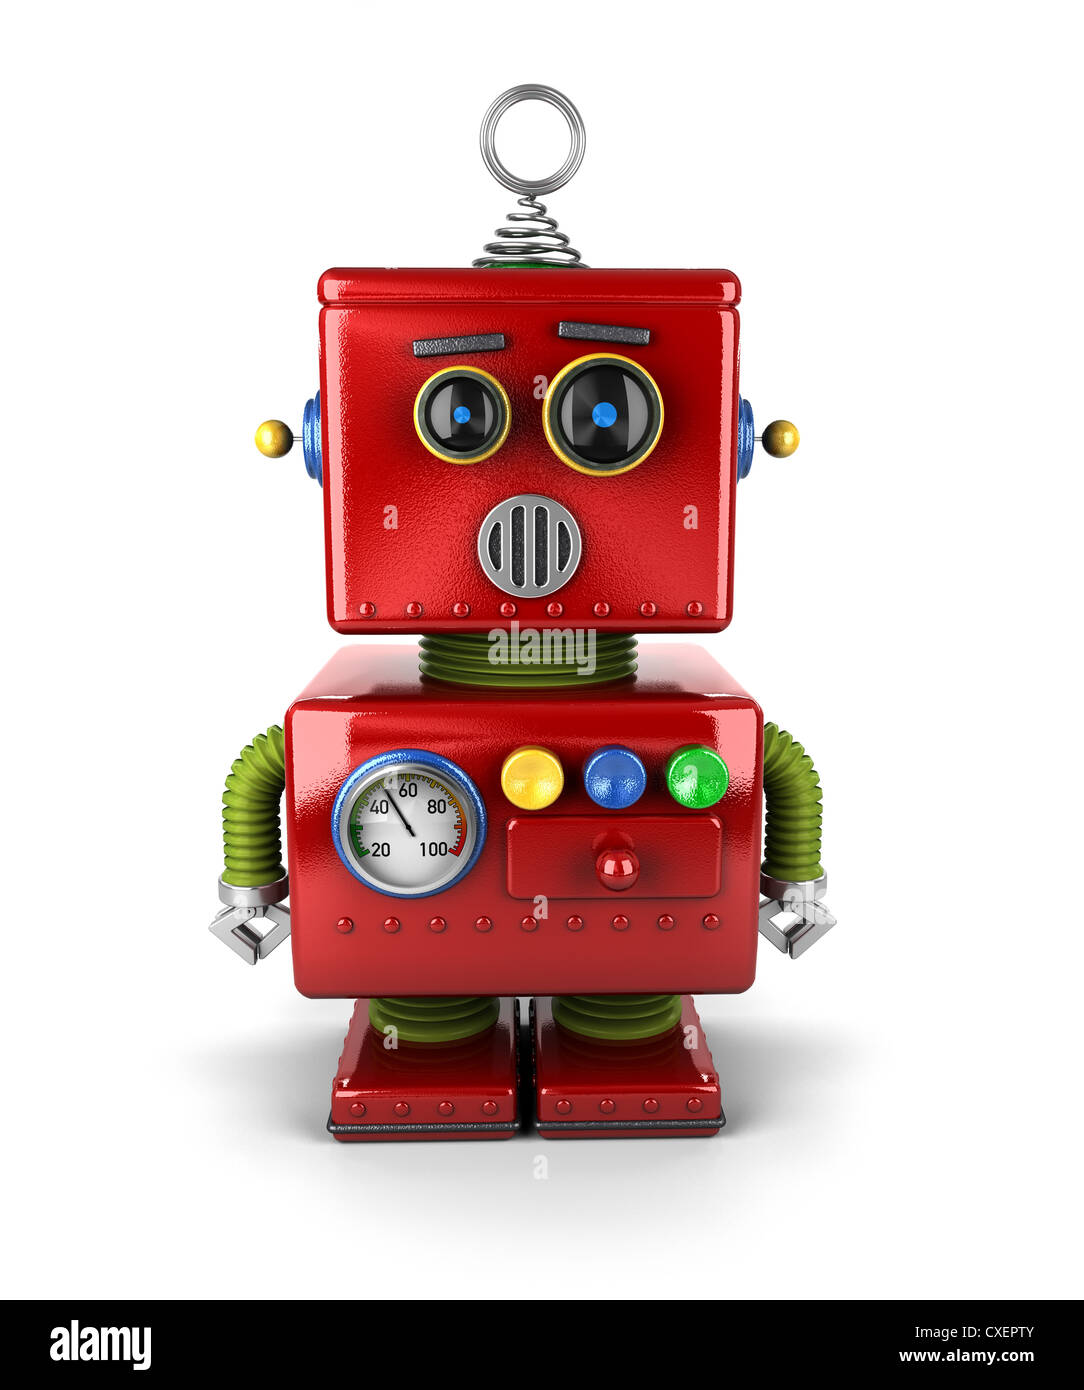 Little vintage toy robot that is surprised - Stock Image